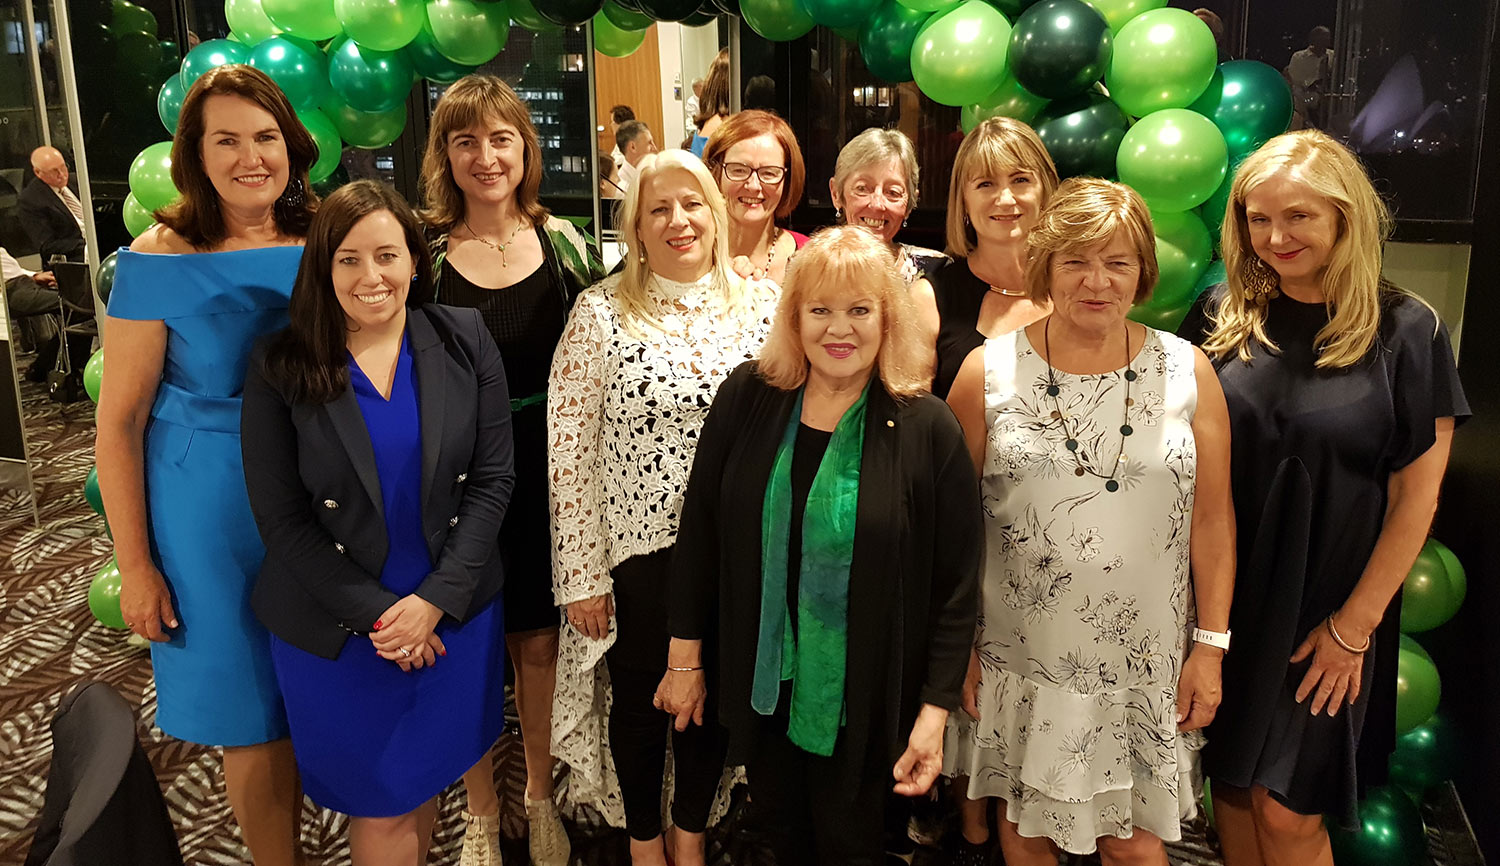 "Winners of the 2019 Brigid Awards pictured with Senator Deborah O Neill (patron, Irish Friends of Labor) and Kaila Murnain (general secretary of NSW Labor). From left to right: Deborah O Neill; Kaila Murnain; Pam O'Mahony; Mary Yaager; Genevieve Kelly; Patricia Amphlett (""Little Pattie""); Anne Murnain; Geraldine Murray; Catriona Barry and Fiona Nix."